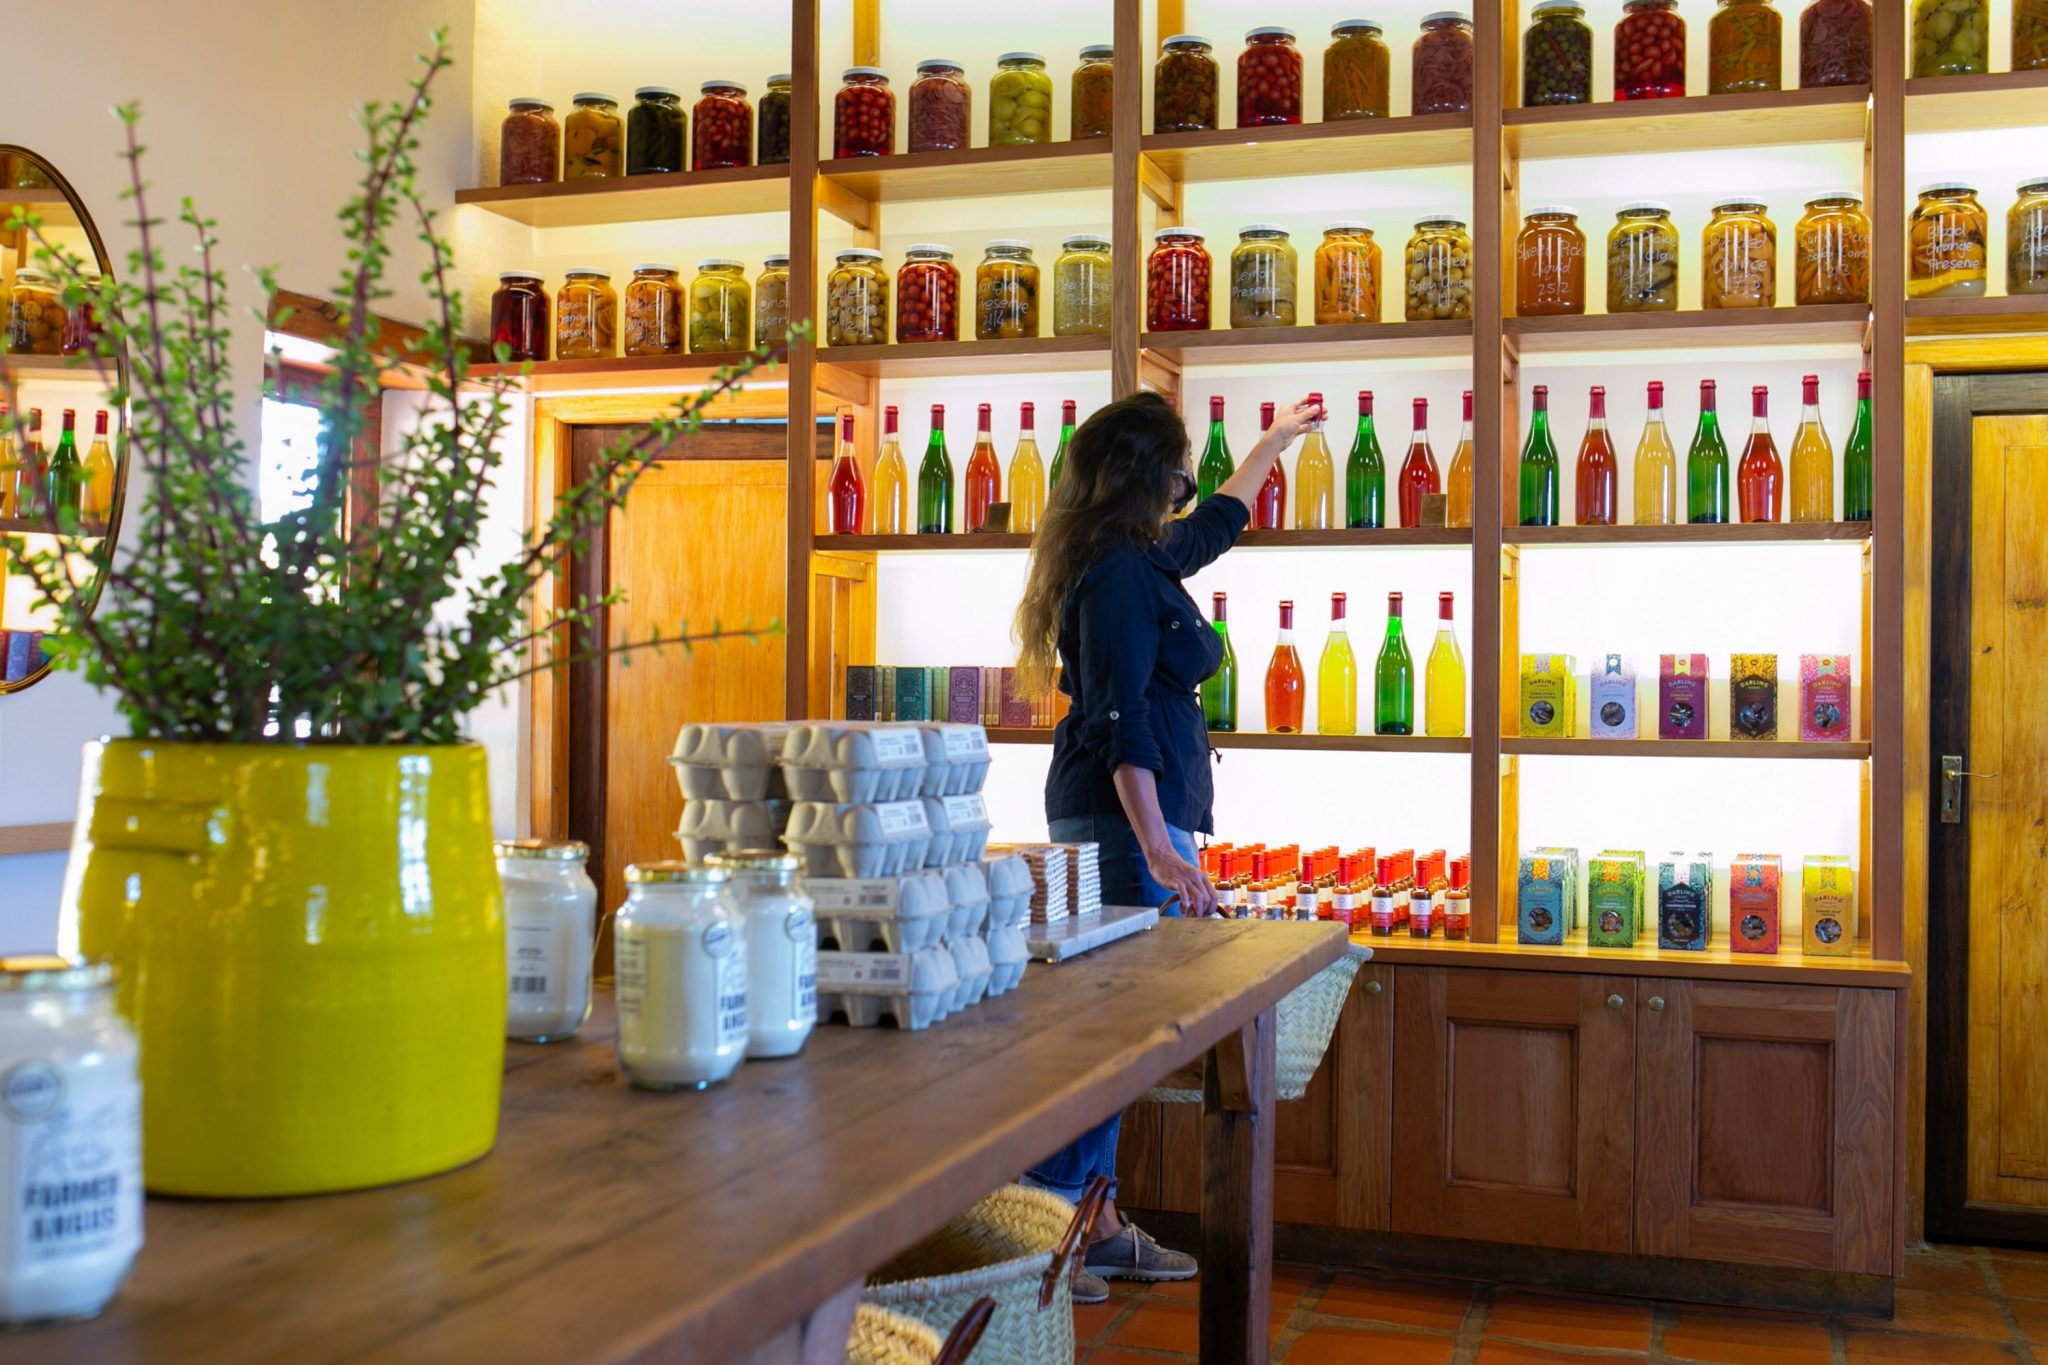 safe shopping Spier Farm Shop and Deli sonia cabano blog eatdrinkcapetown